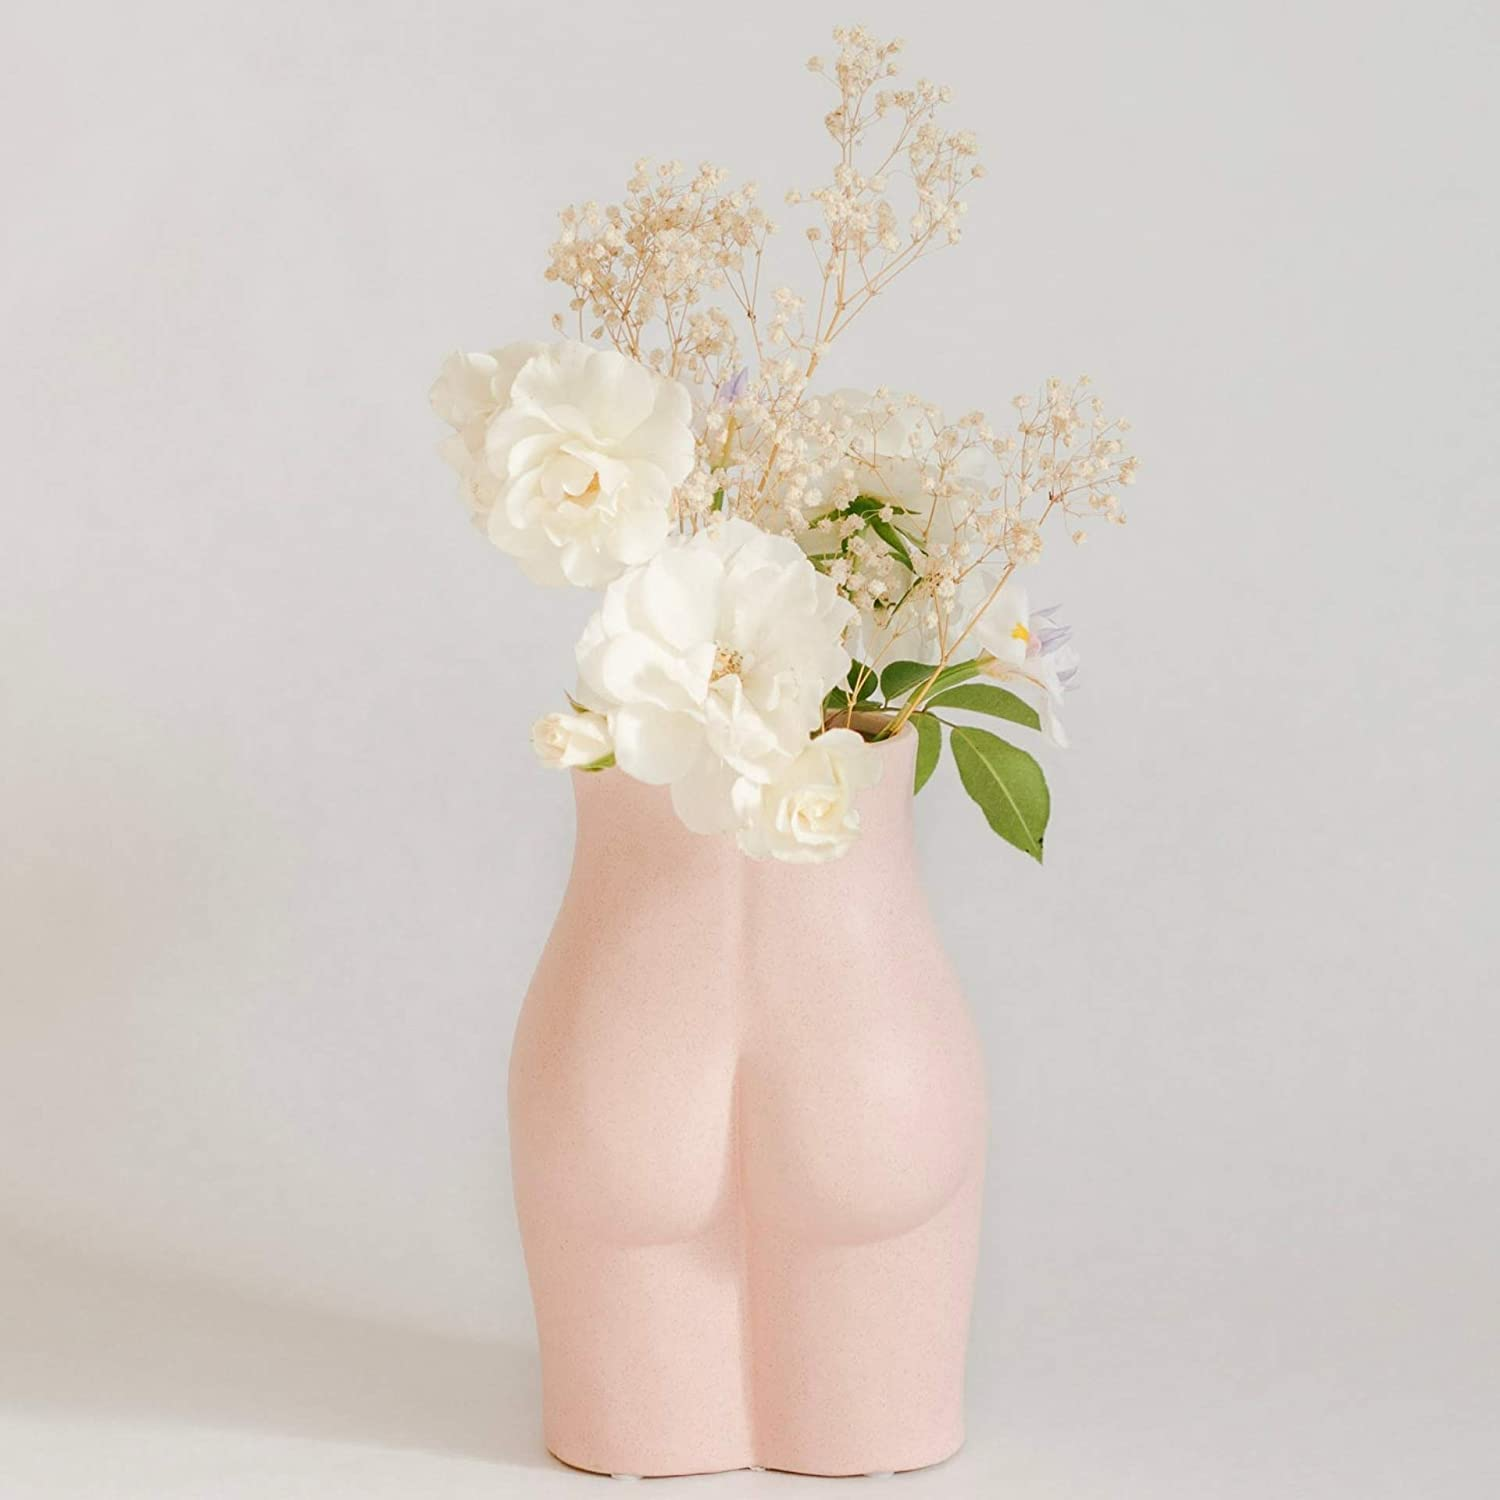 BASE ROOTS Tall Body Flower Vase, Vases for Decor, Modern Boho Chic Home Decor, Small Accent Piece for Living Room, Indoor Plant, Shelf, Mantle, Table, Office, Desk, Dorm (Tall Bottom, Speckled Pink)